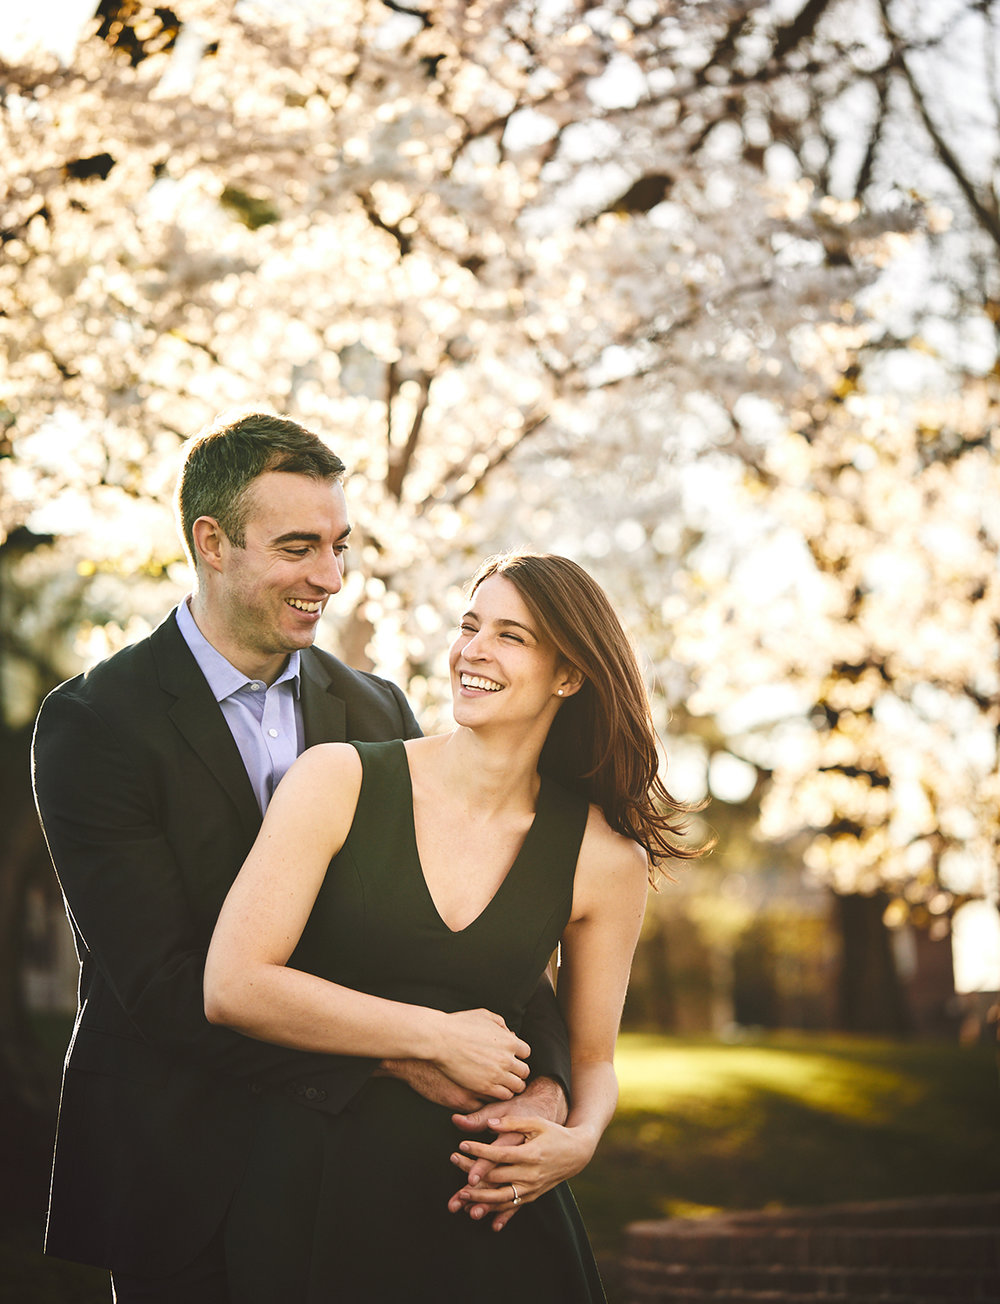 180422_StevensInstitureofTechnologyEngagementPhotography_HobokenEngagement Photography_By_BriJohnsonWeddings_0012.jpg